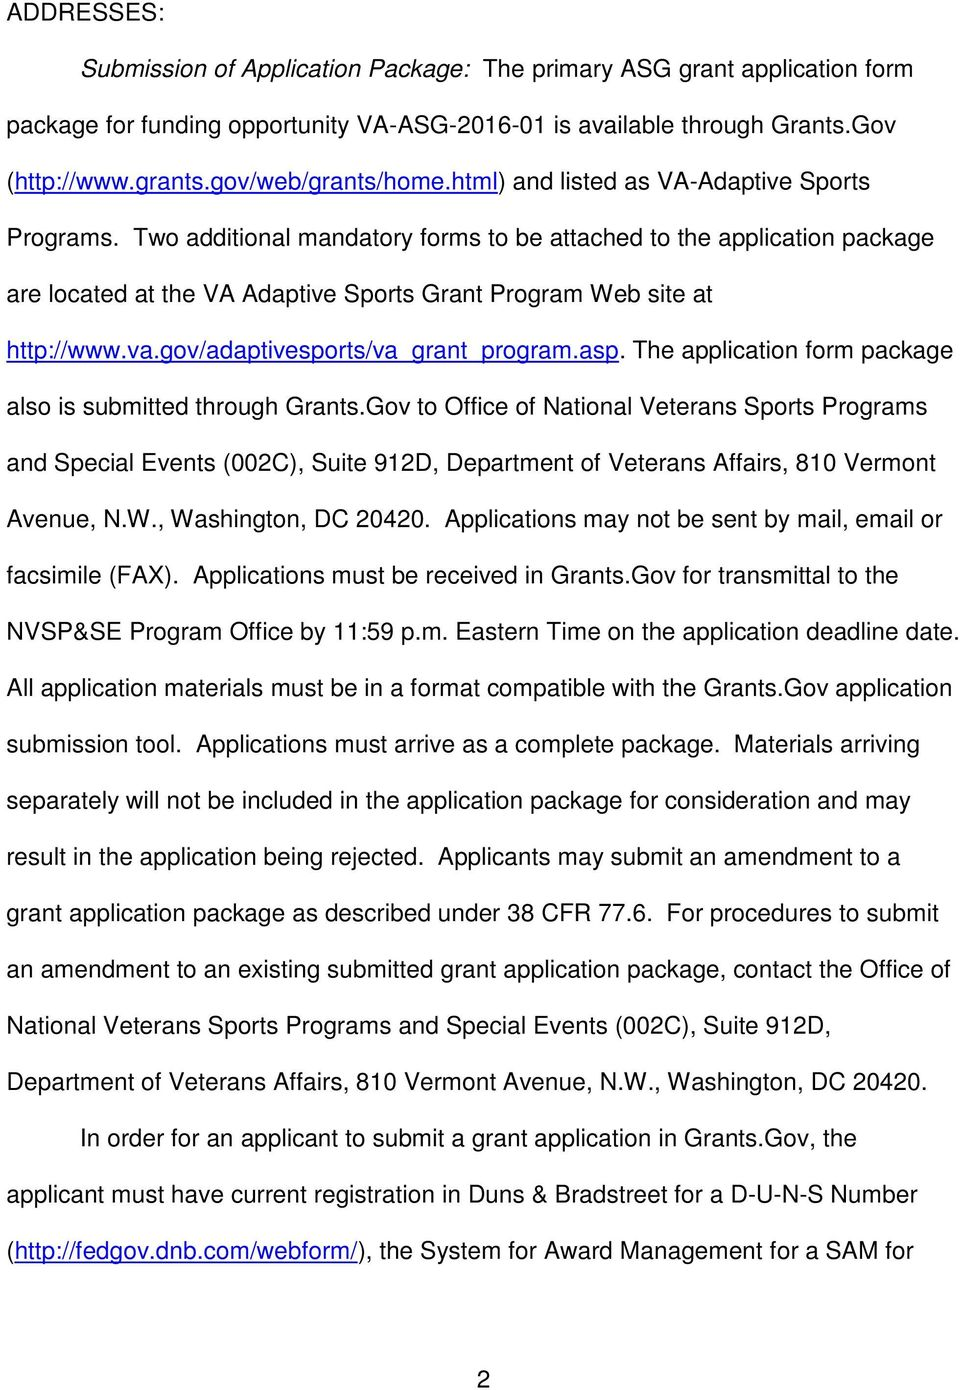 Two additional mandatory forms to be attached to the application package are located at the VA Adaptive Sports Grant Program Web site at http://www.va.gov/adaptivesports/va_grant_program.asp.